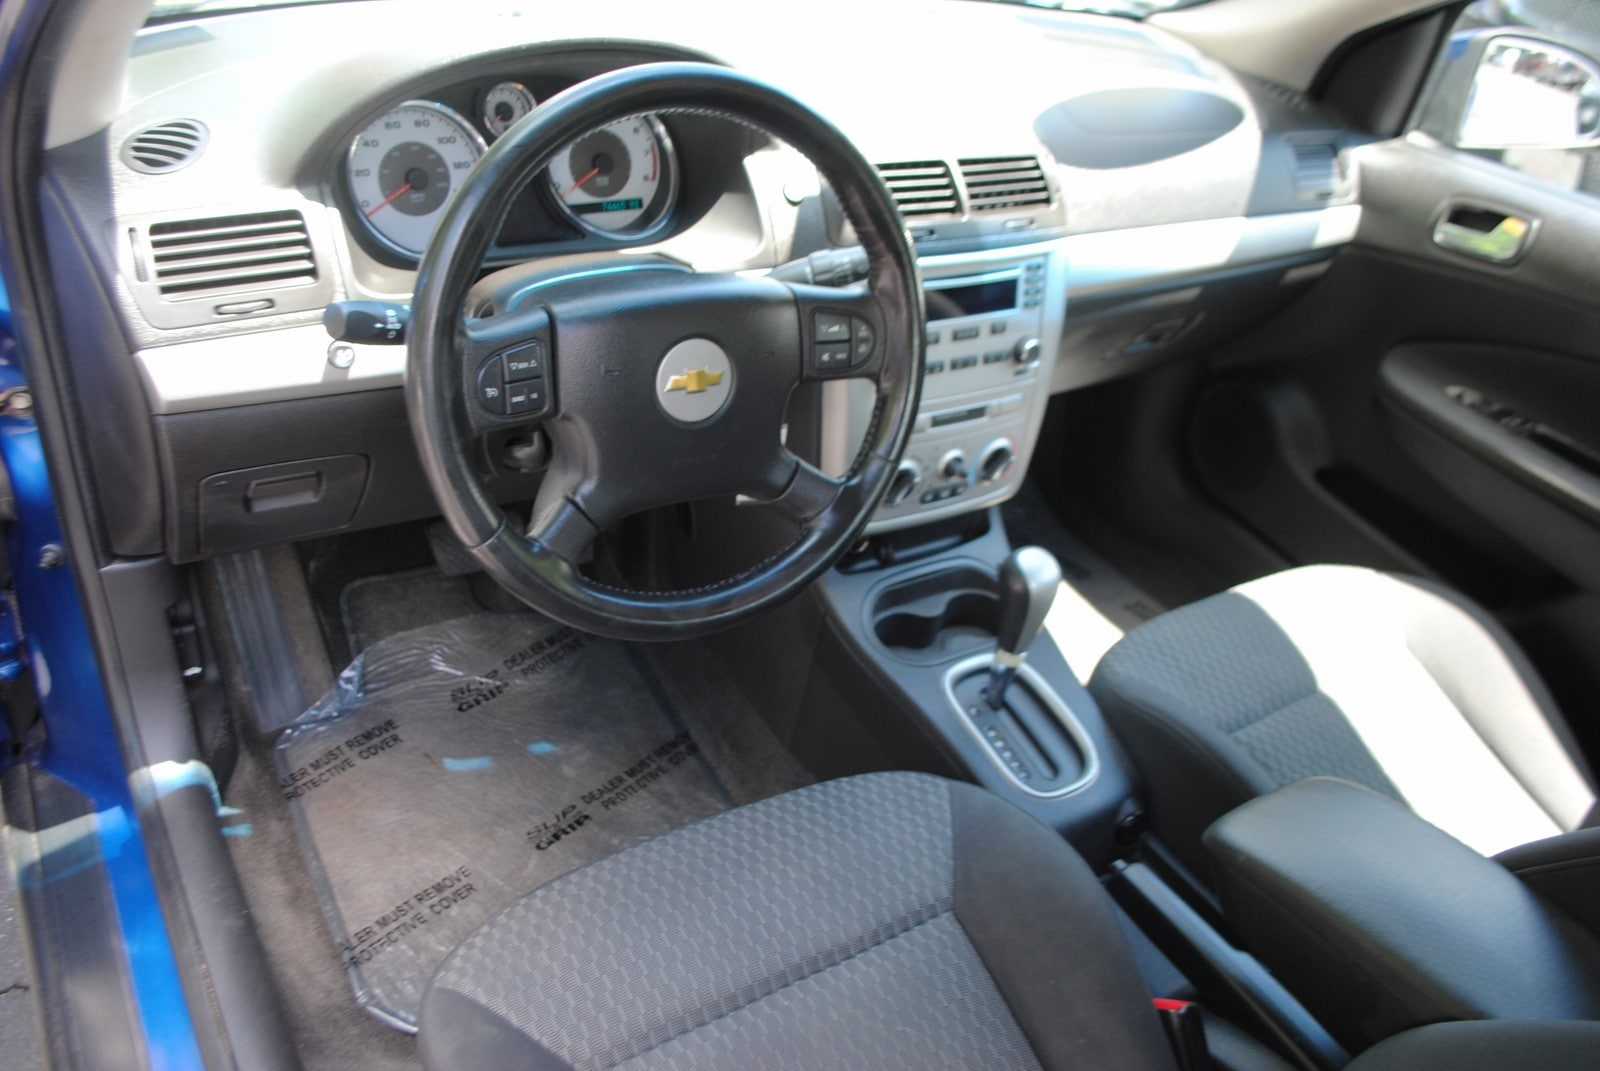 Used 2006 Chevrolet Cobalt For Sale at Ramsey Corp  | VIN